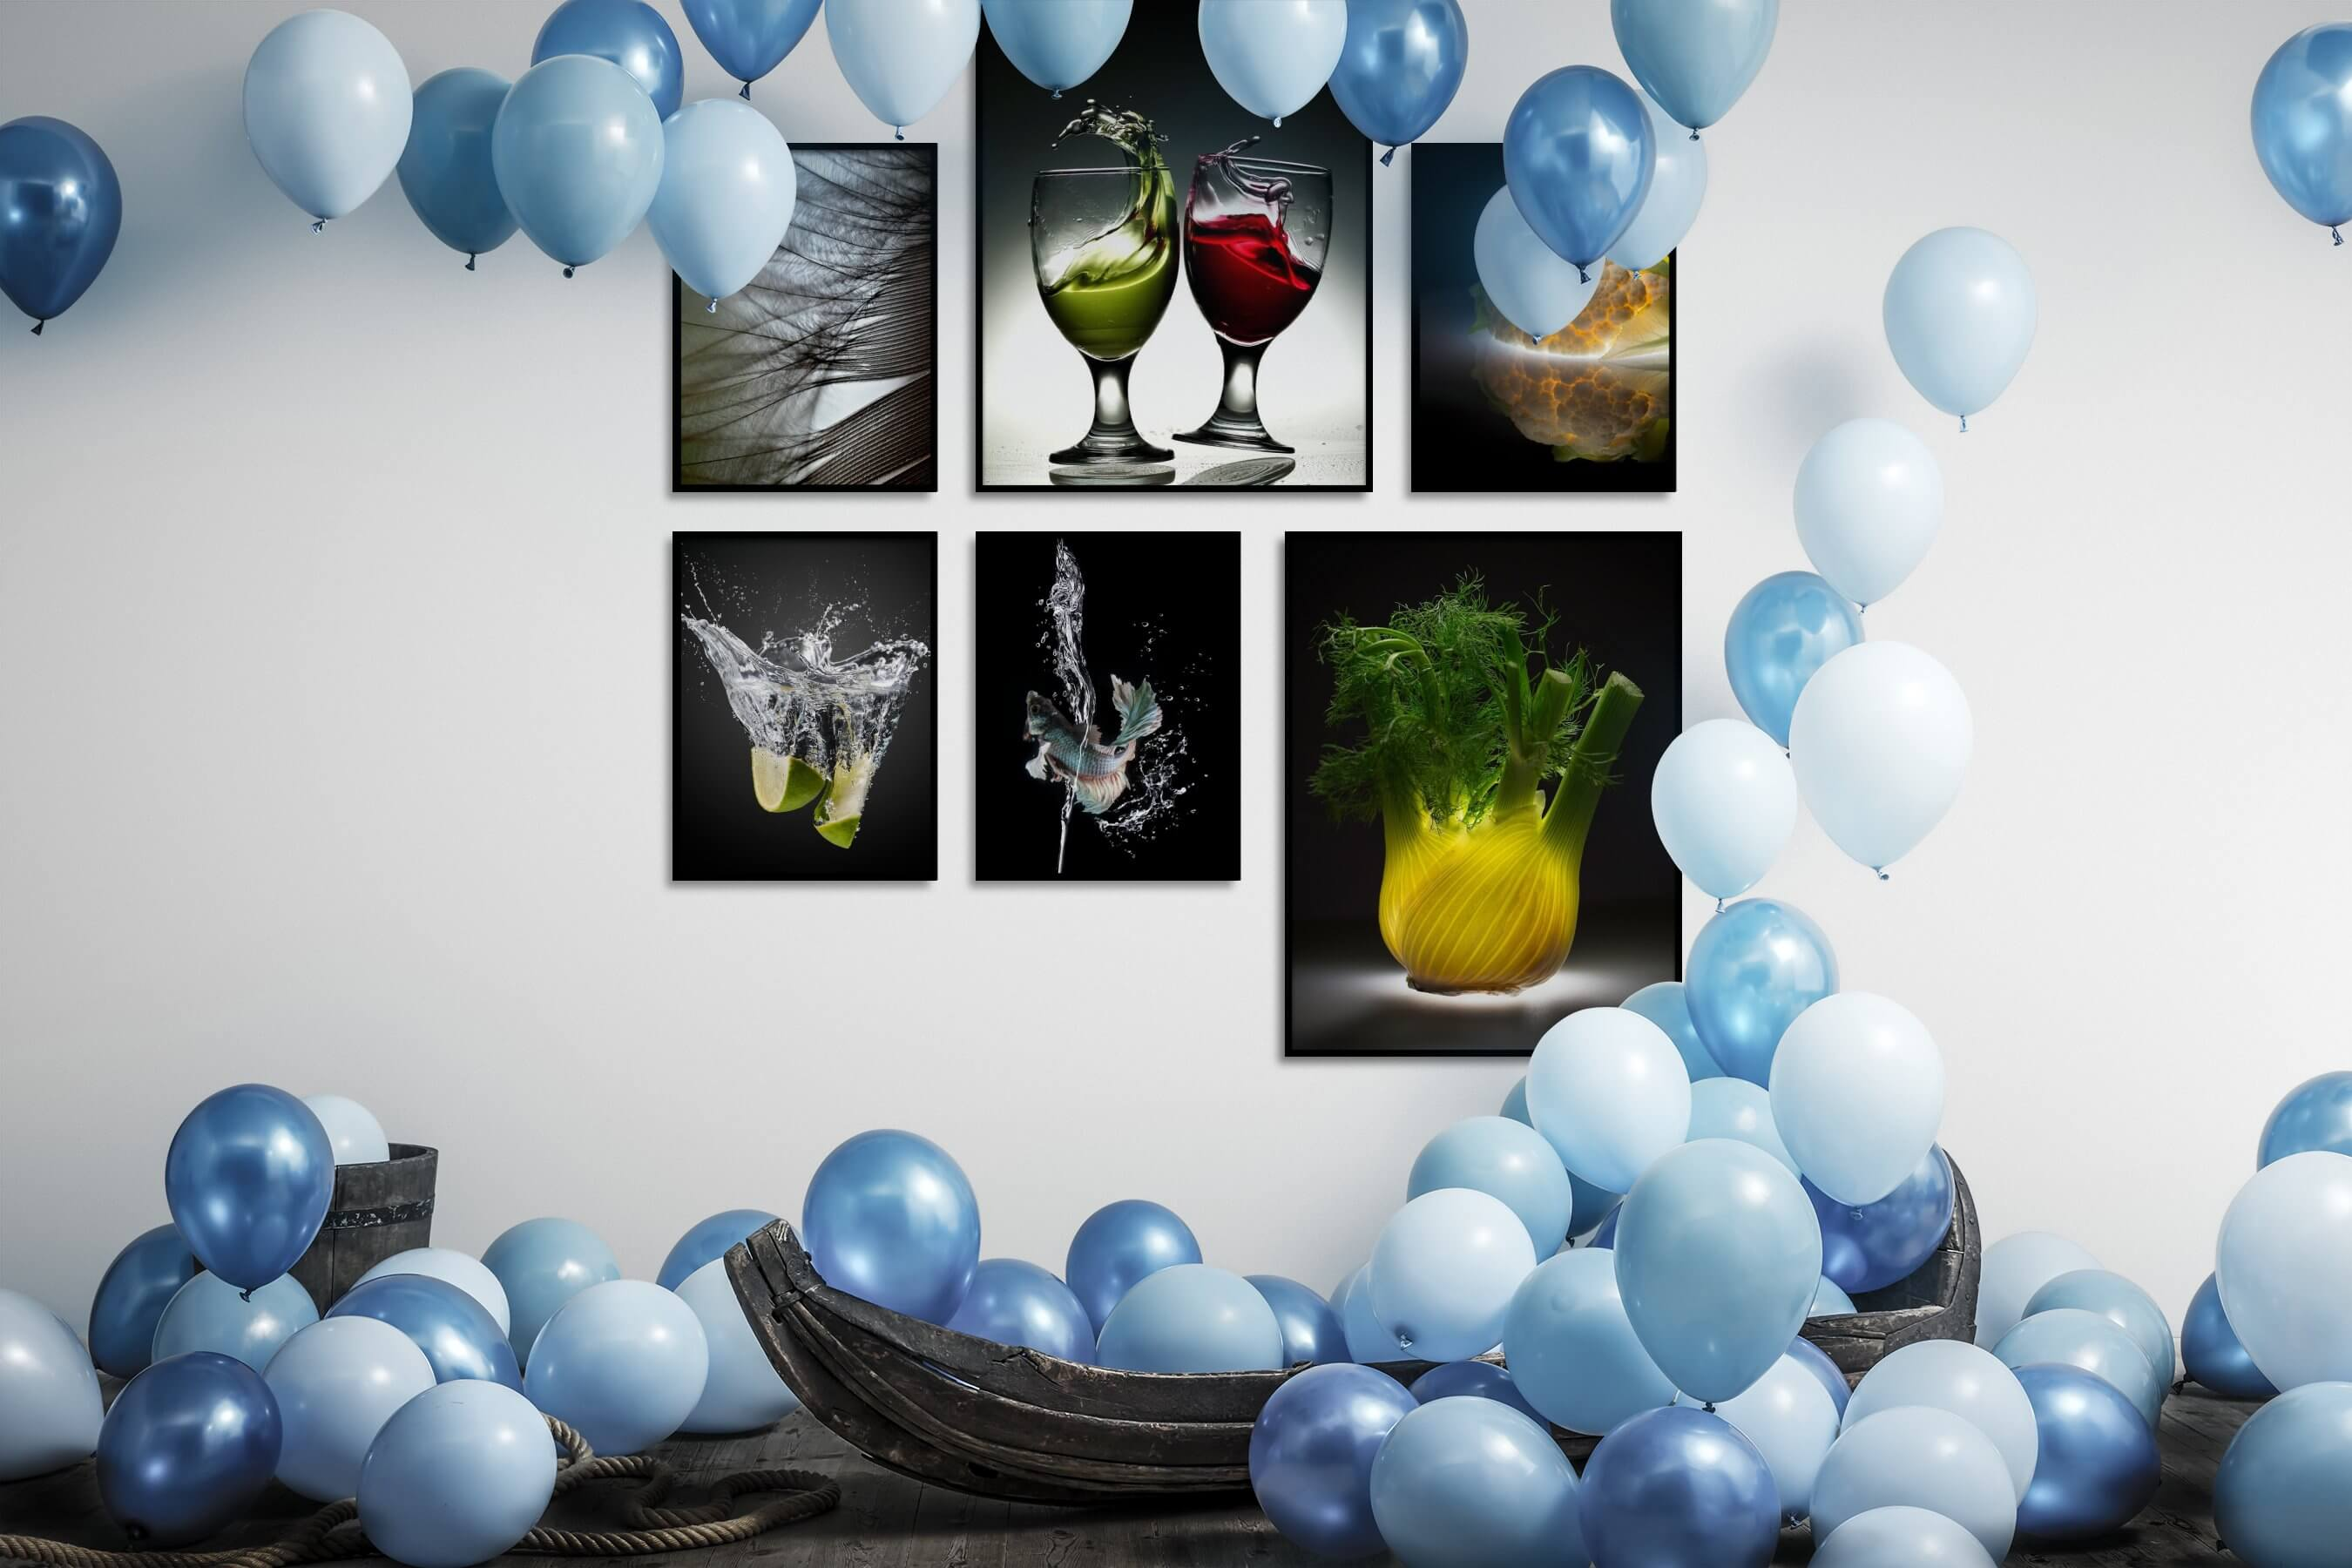 Gallery wall idea with six framed pictures arranged on a wall depicting For the Moderate, Beach & Water, Dark Tones, Animals, Flowers & Plants, and For the Minimalist